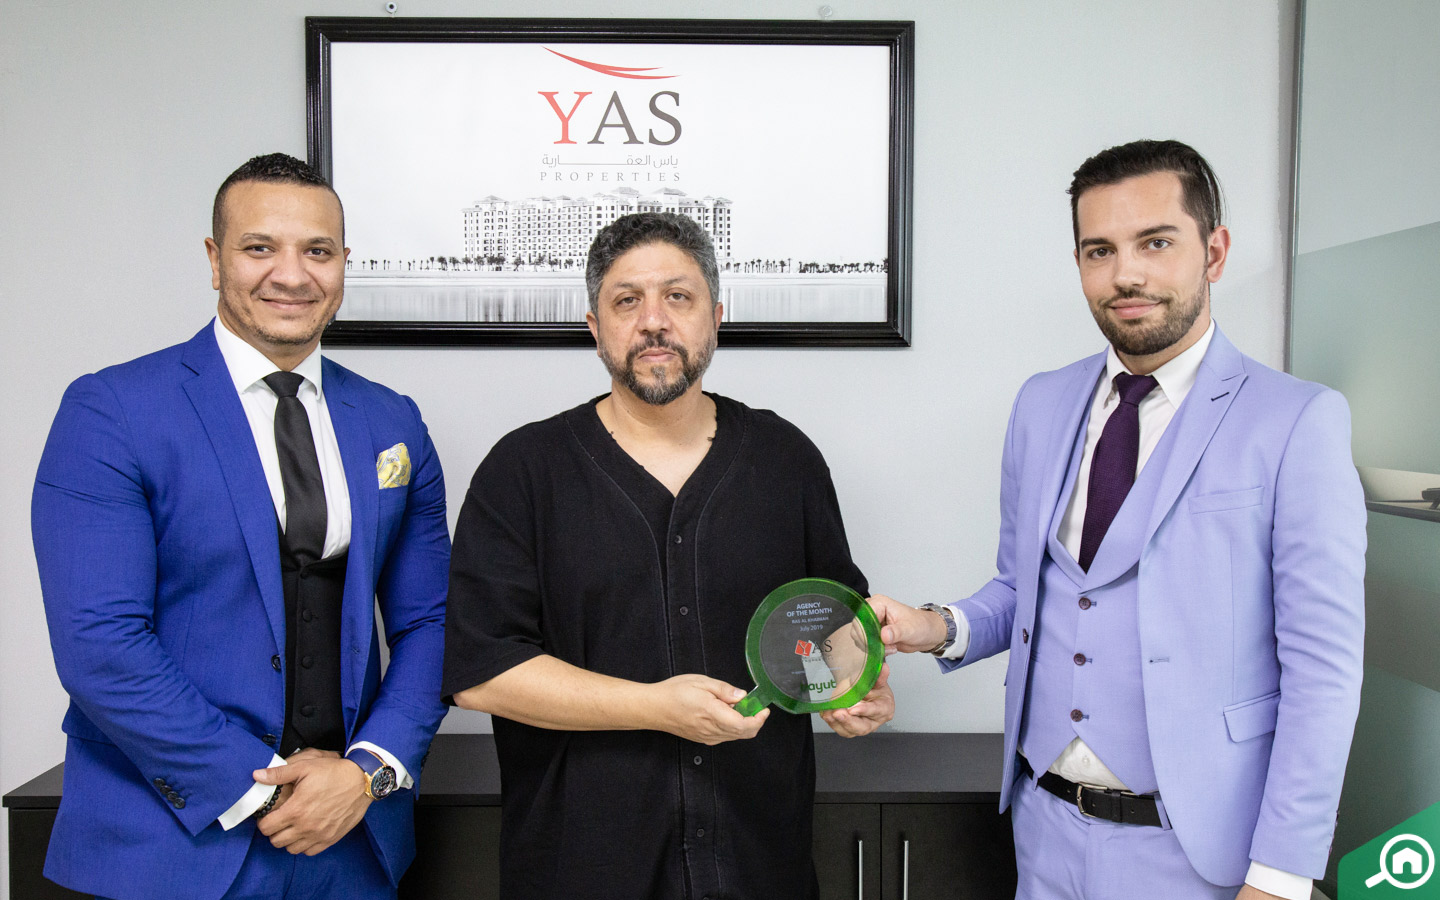 Yasser Mahmoud Hilayil, CEO of Yas Properties